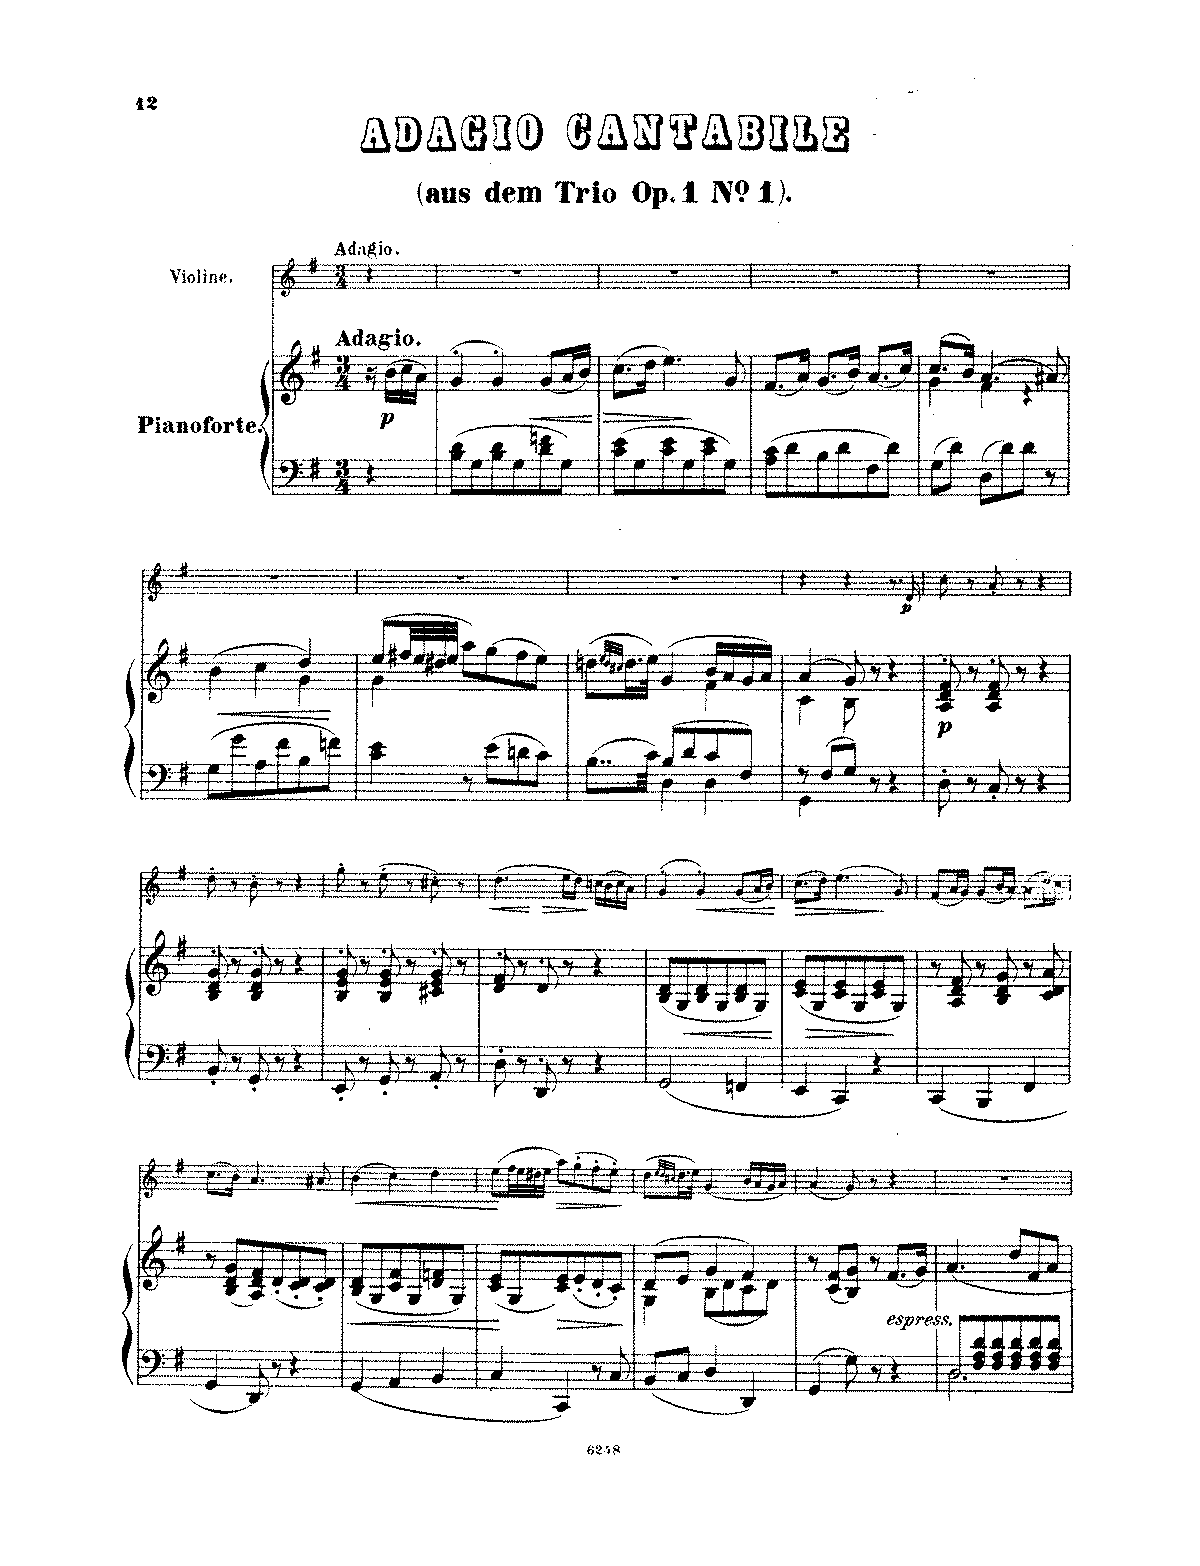 PMLP01410-Beeth Adagio Cant no 4 of Her Kl St vol. 3 Beethoven cmplt.pdf